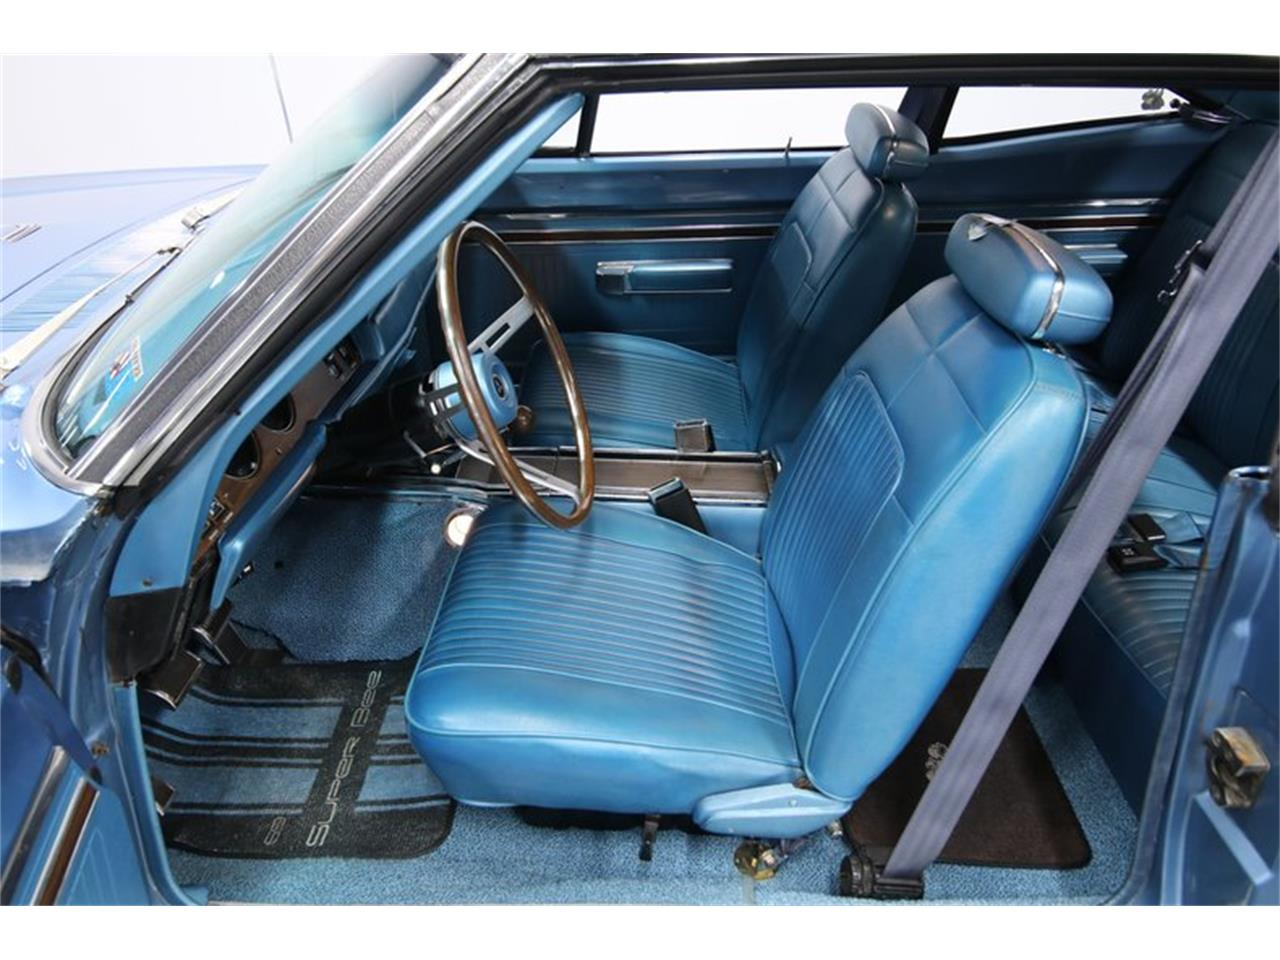 Large Picture of Classic 1969 Super Bee located in Lutz Florida - $43,995.00 Offered by Streetside Classics - Tampa - QP0O